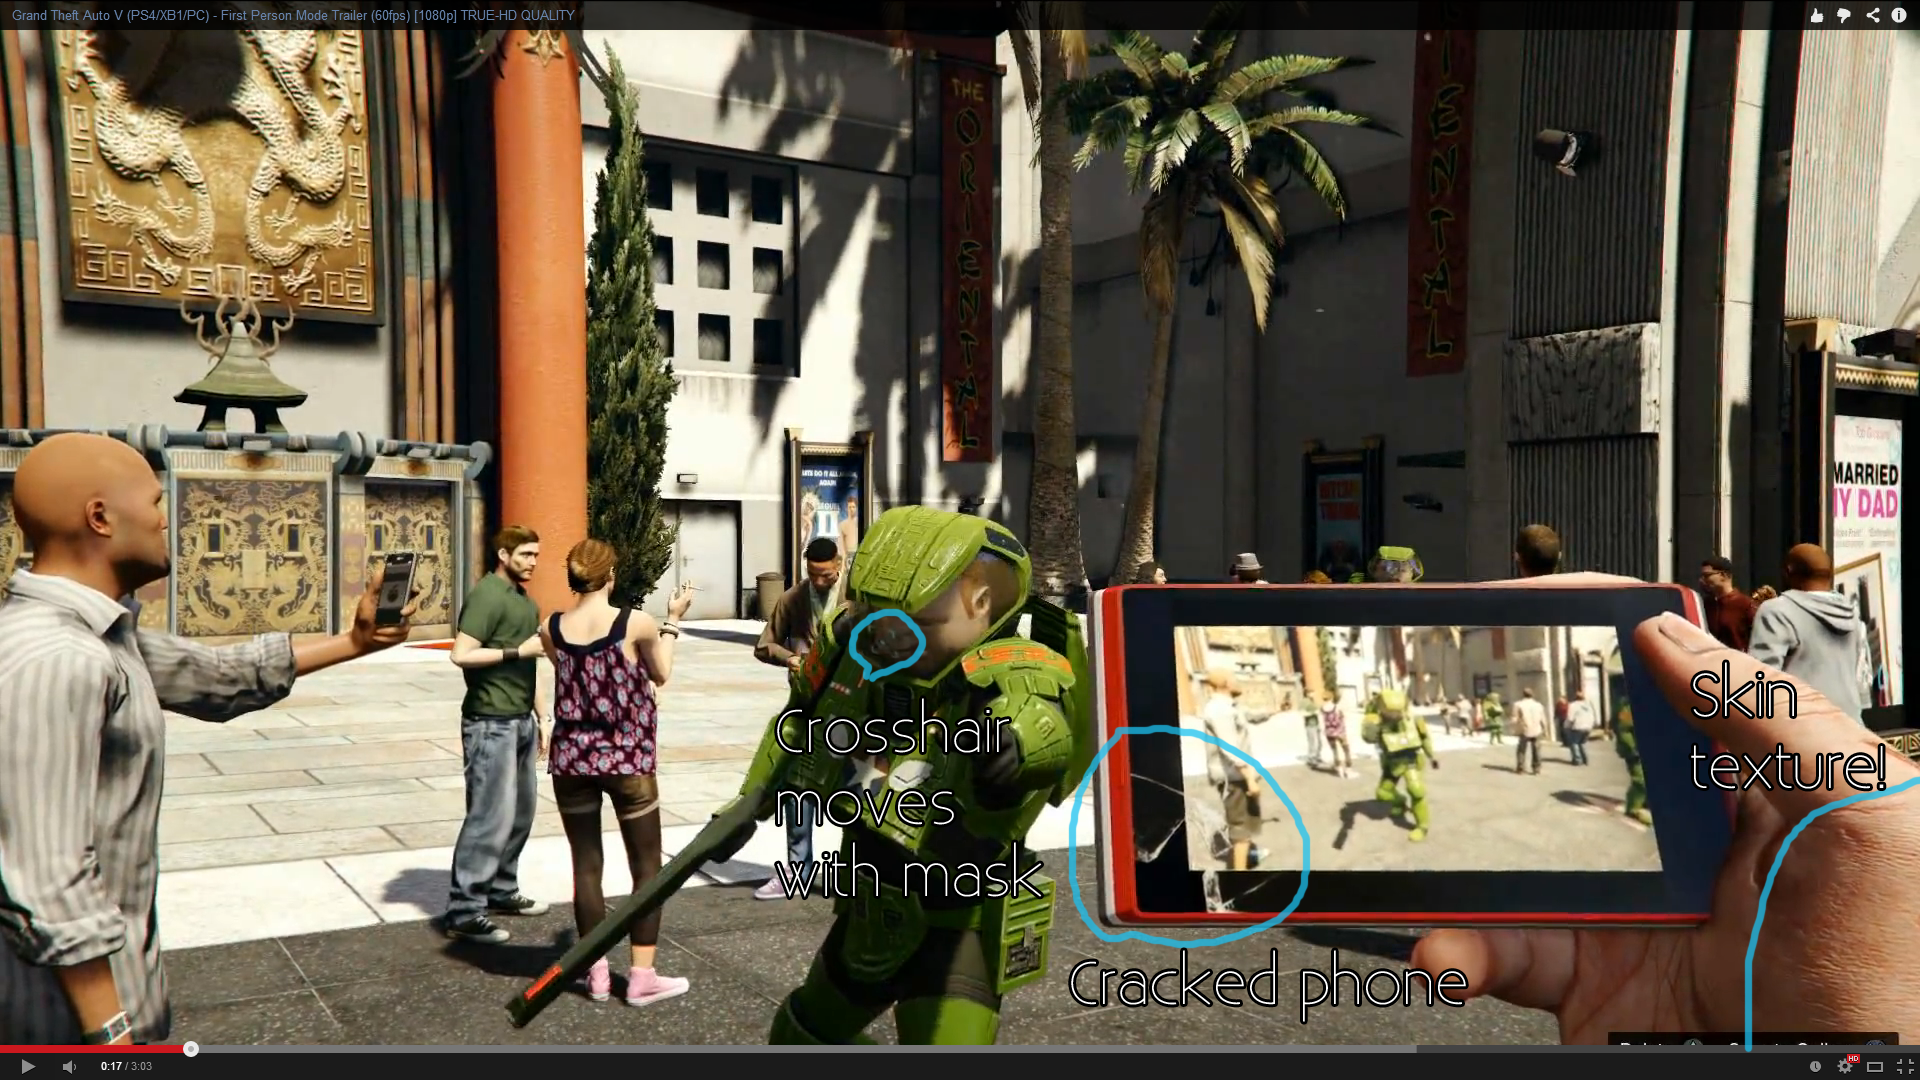 Tiny but truly impressive new gta v ps4 xbox one features that